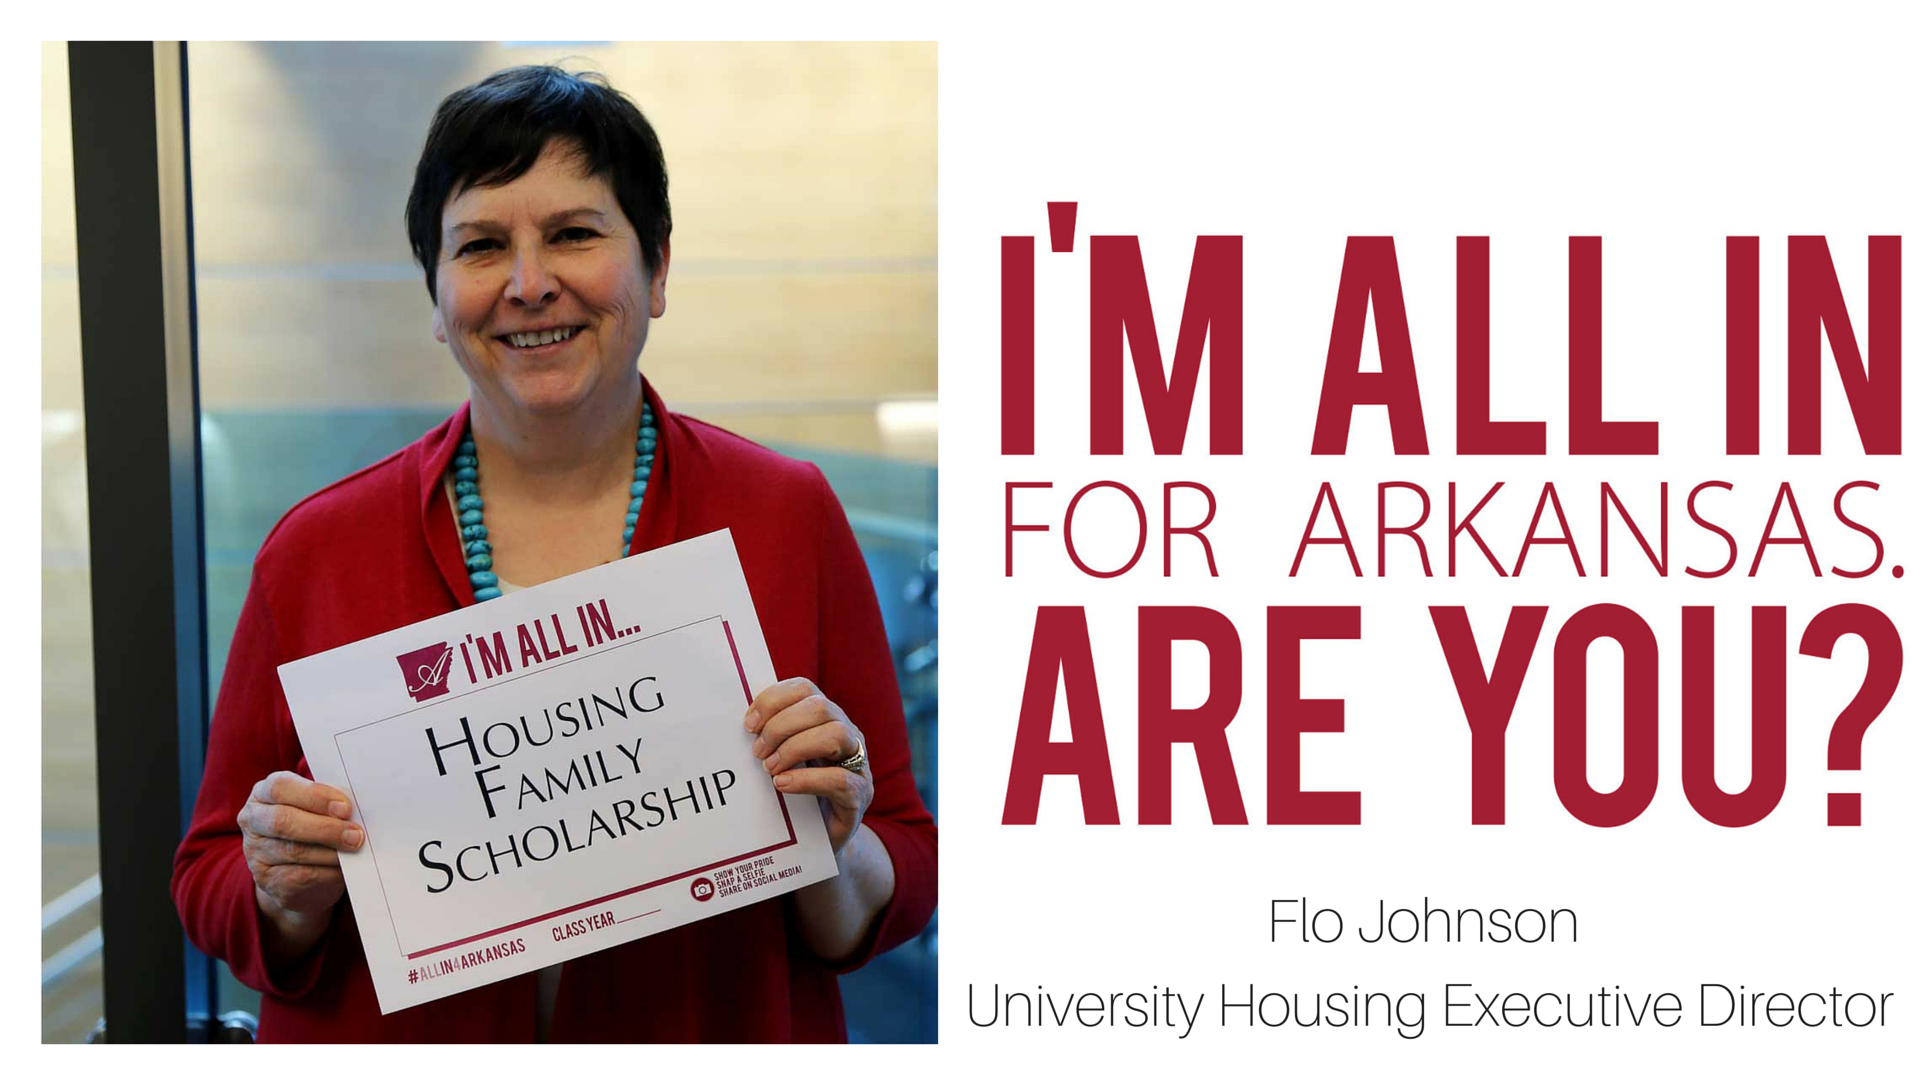 Housing Joins All in for Arkansas to Establish Family Scholarship